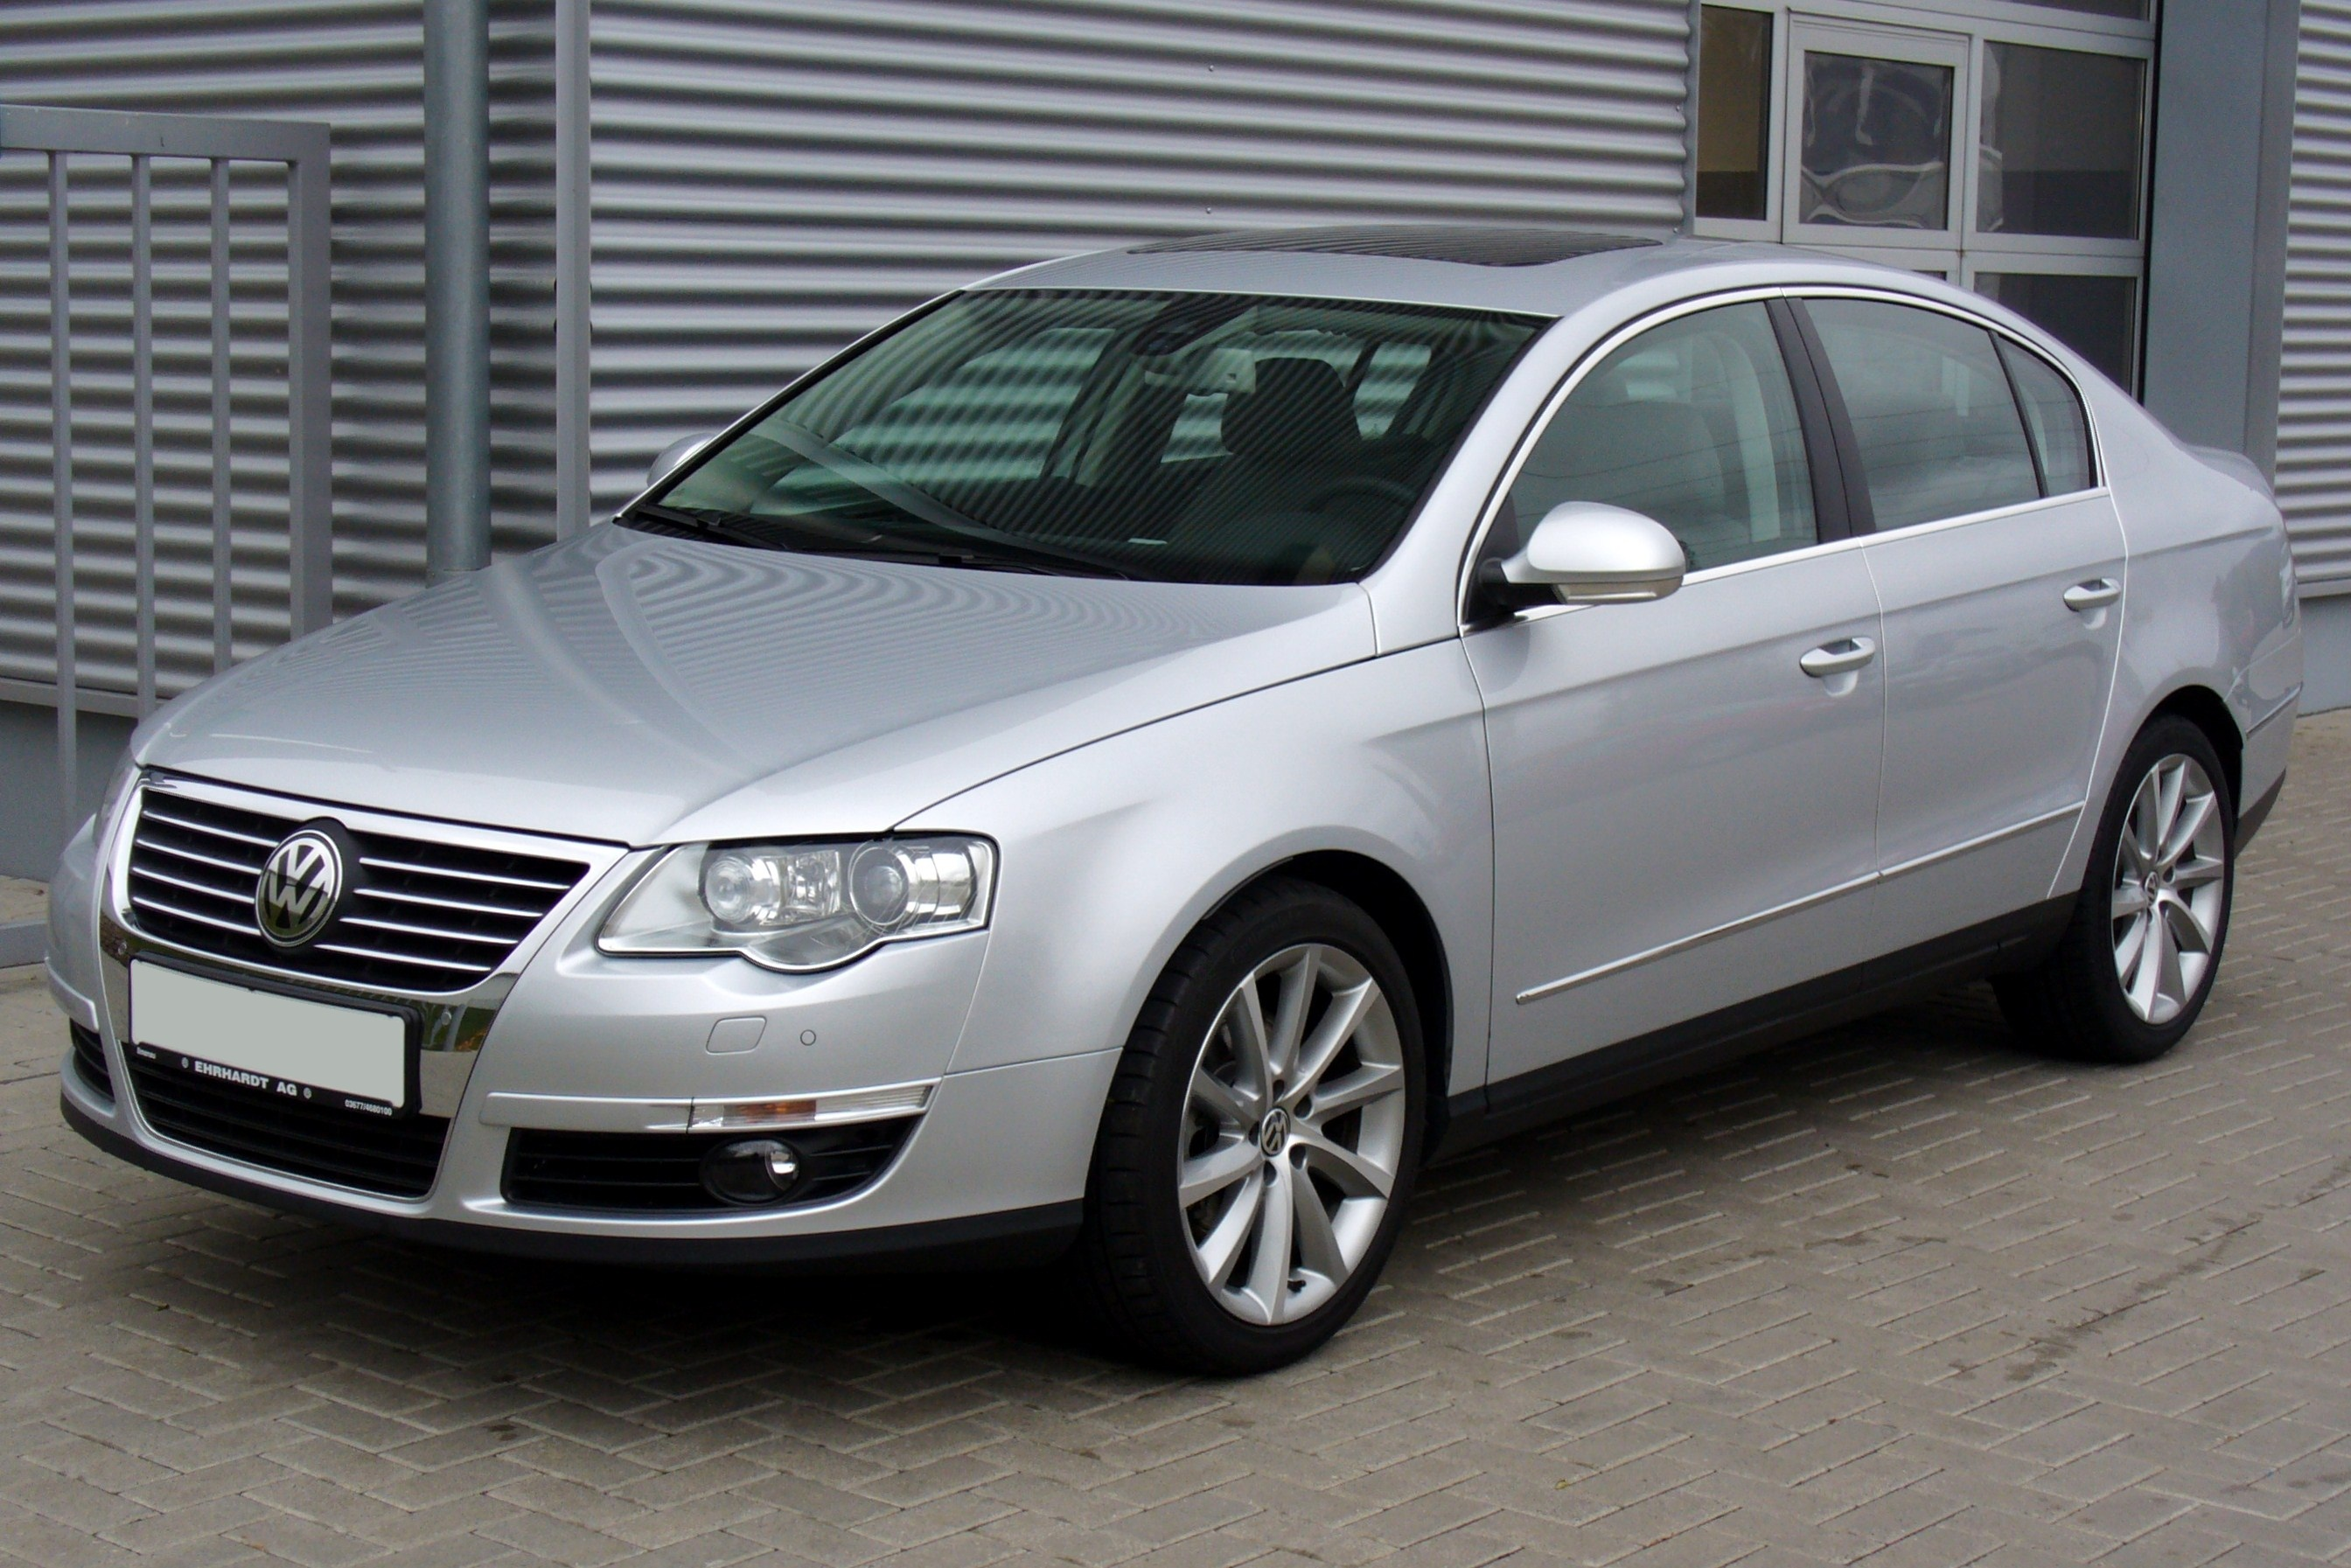 file vw passat b6 limousine 2 0 tdi dsg highline. Black Bedroom Furniture Sets. Home Design Ideas